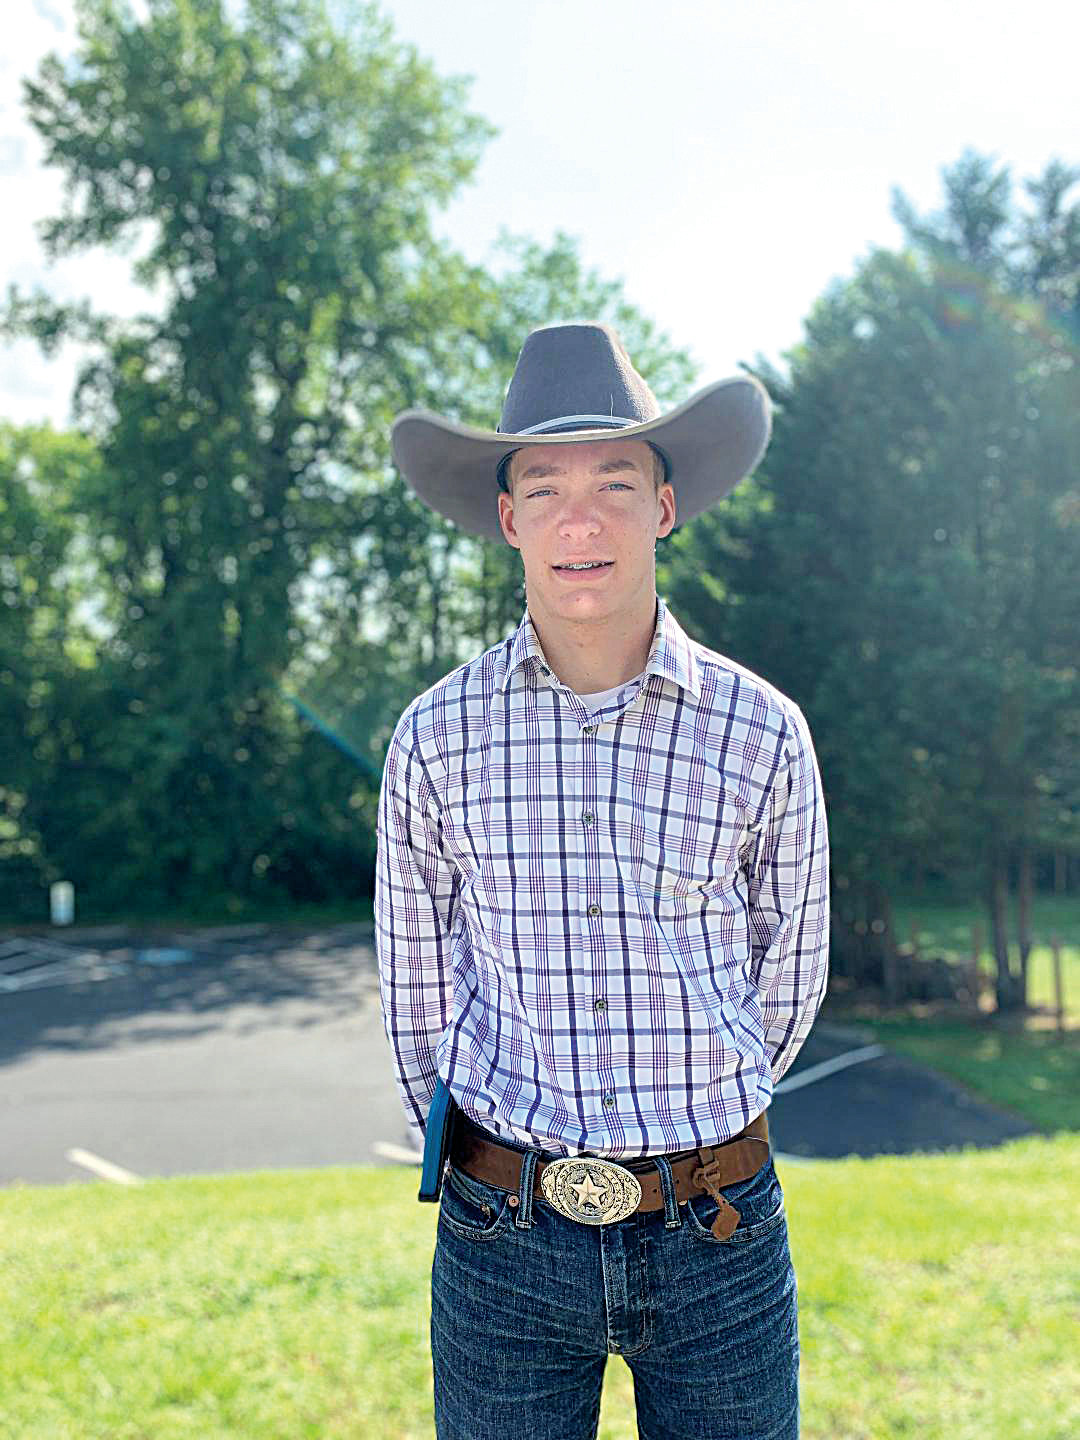 Luke Barker of Siler City will be representing North Carolina at the 2019 4-H National Shooting Sports Championships in Grand Island, Nebraska, beginning on June 23.